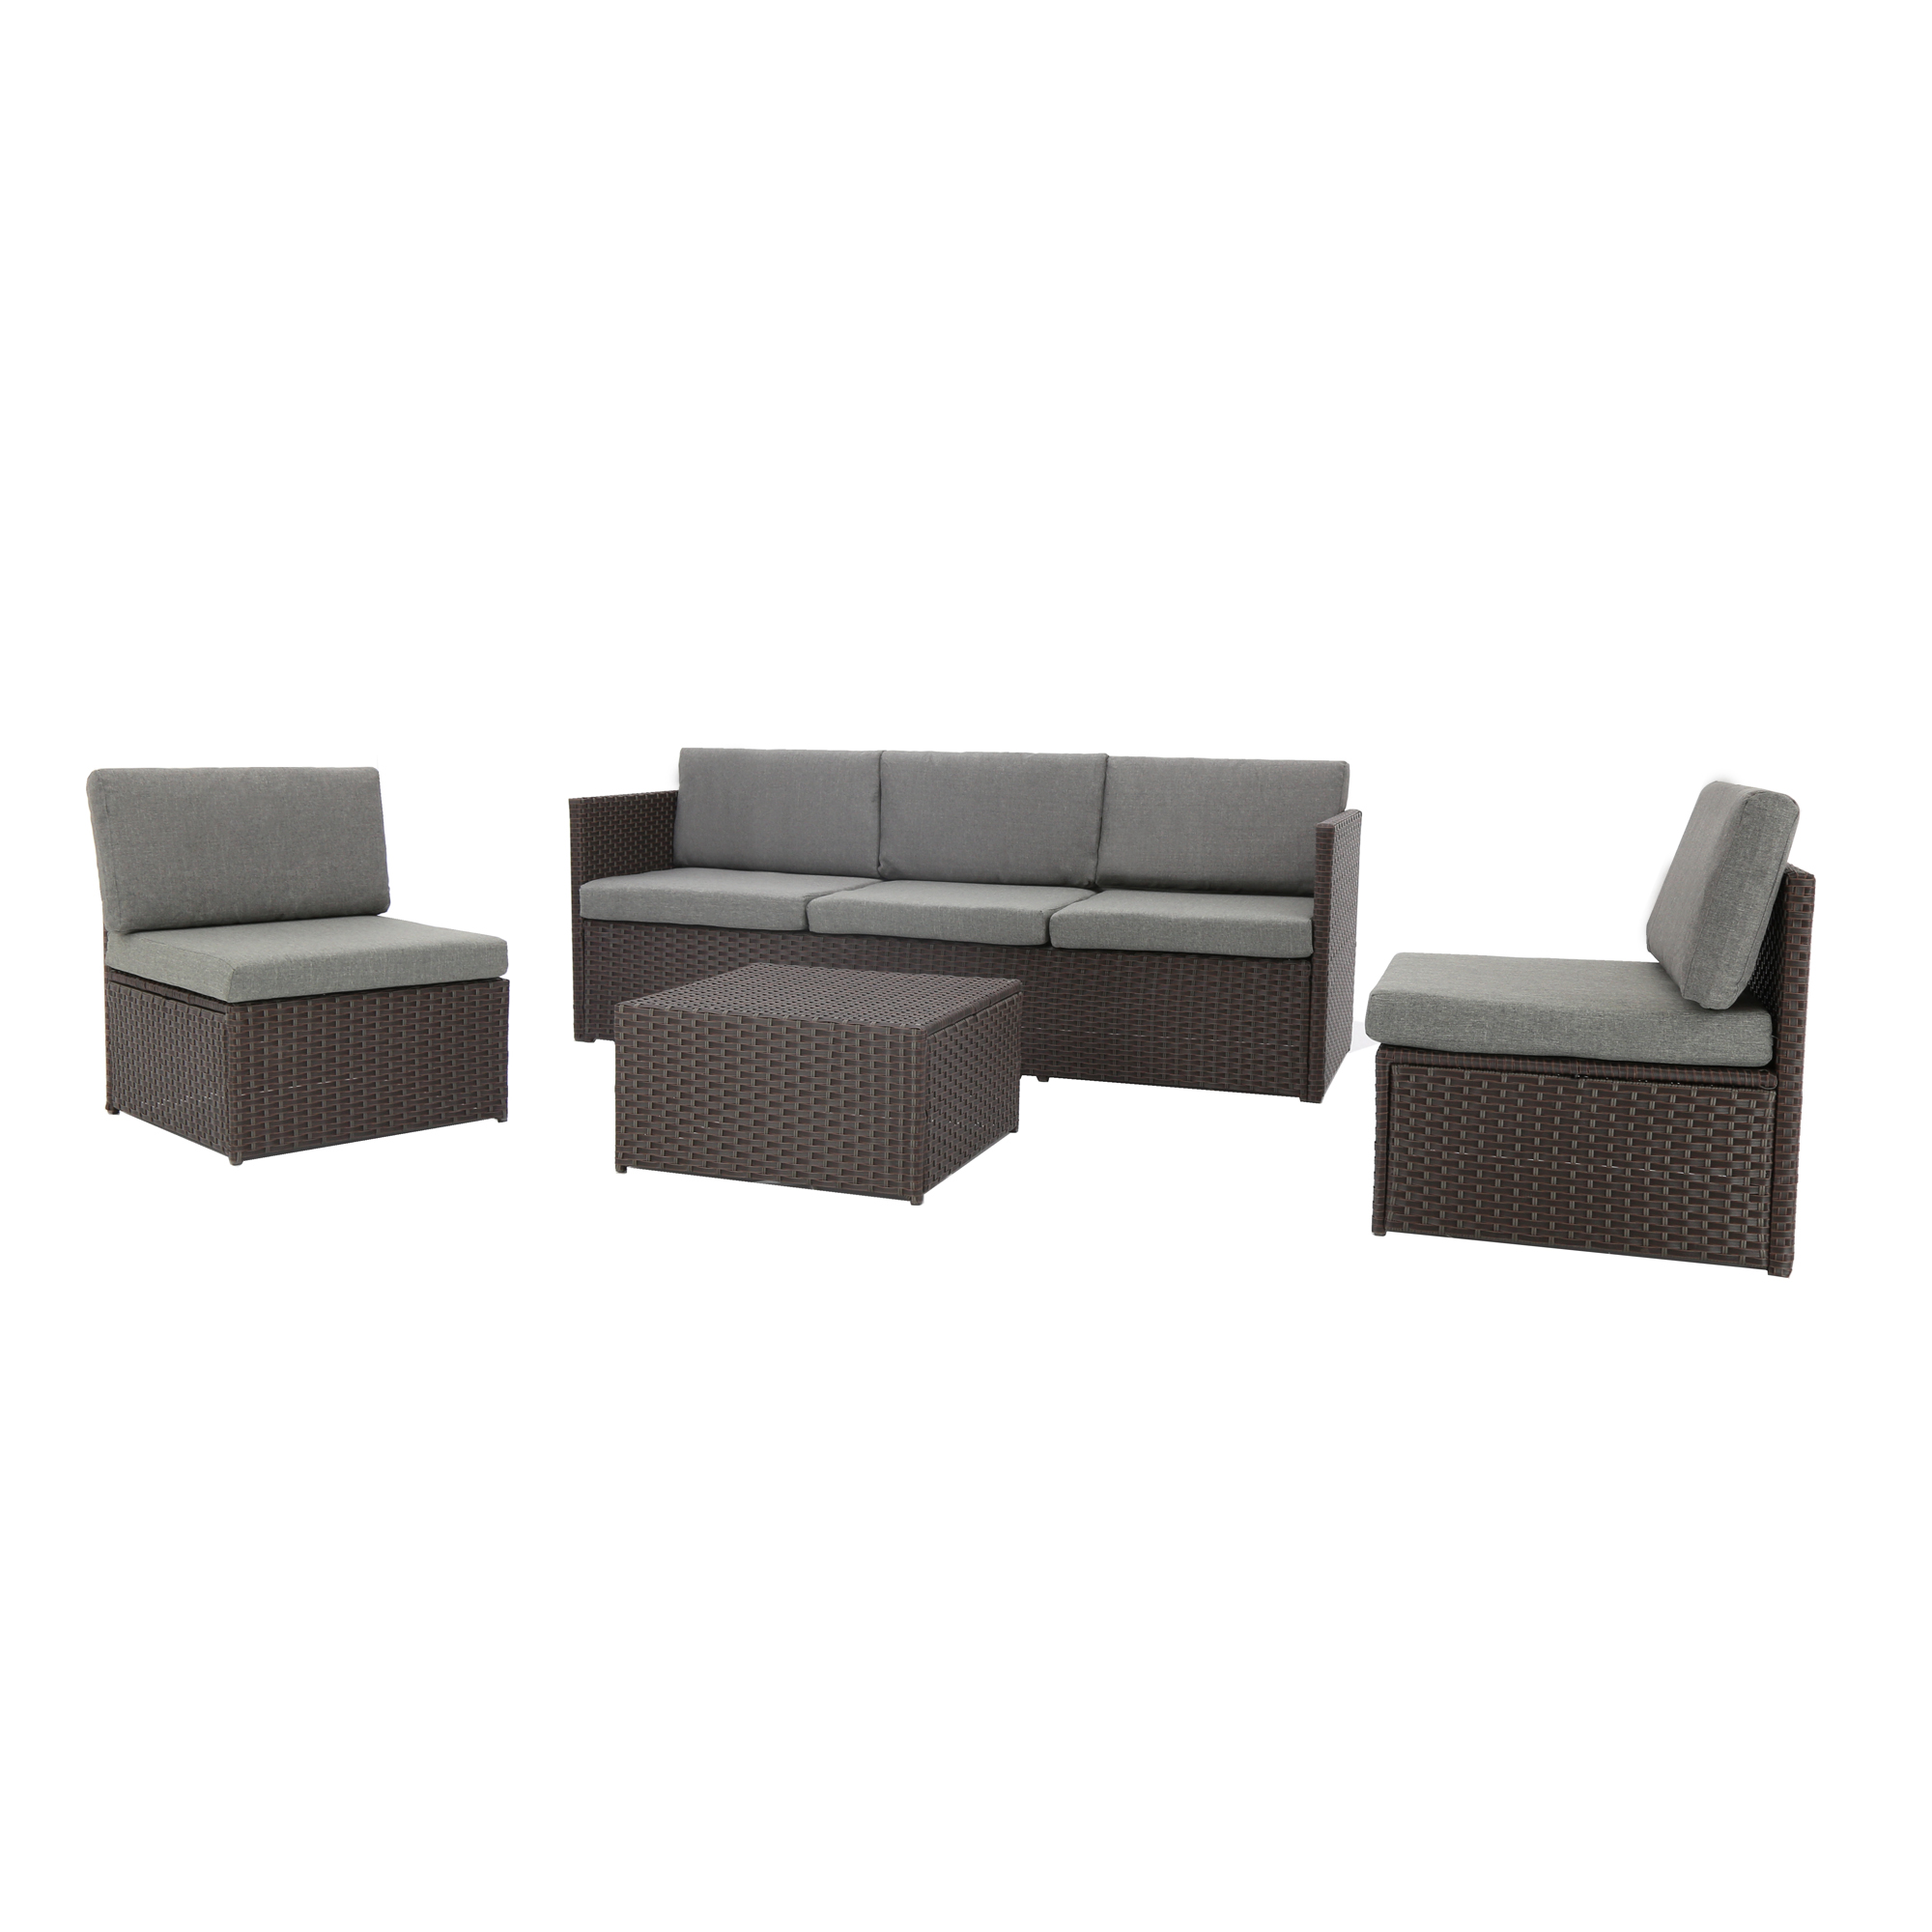 baner garden k16ch 4 piece complete outdoor furniture seating patio resin wicker rattan sectional steel set with cushions chocolate